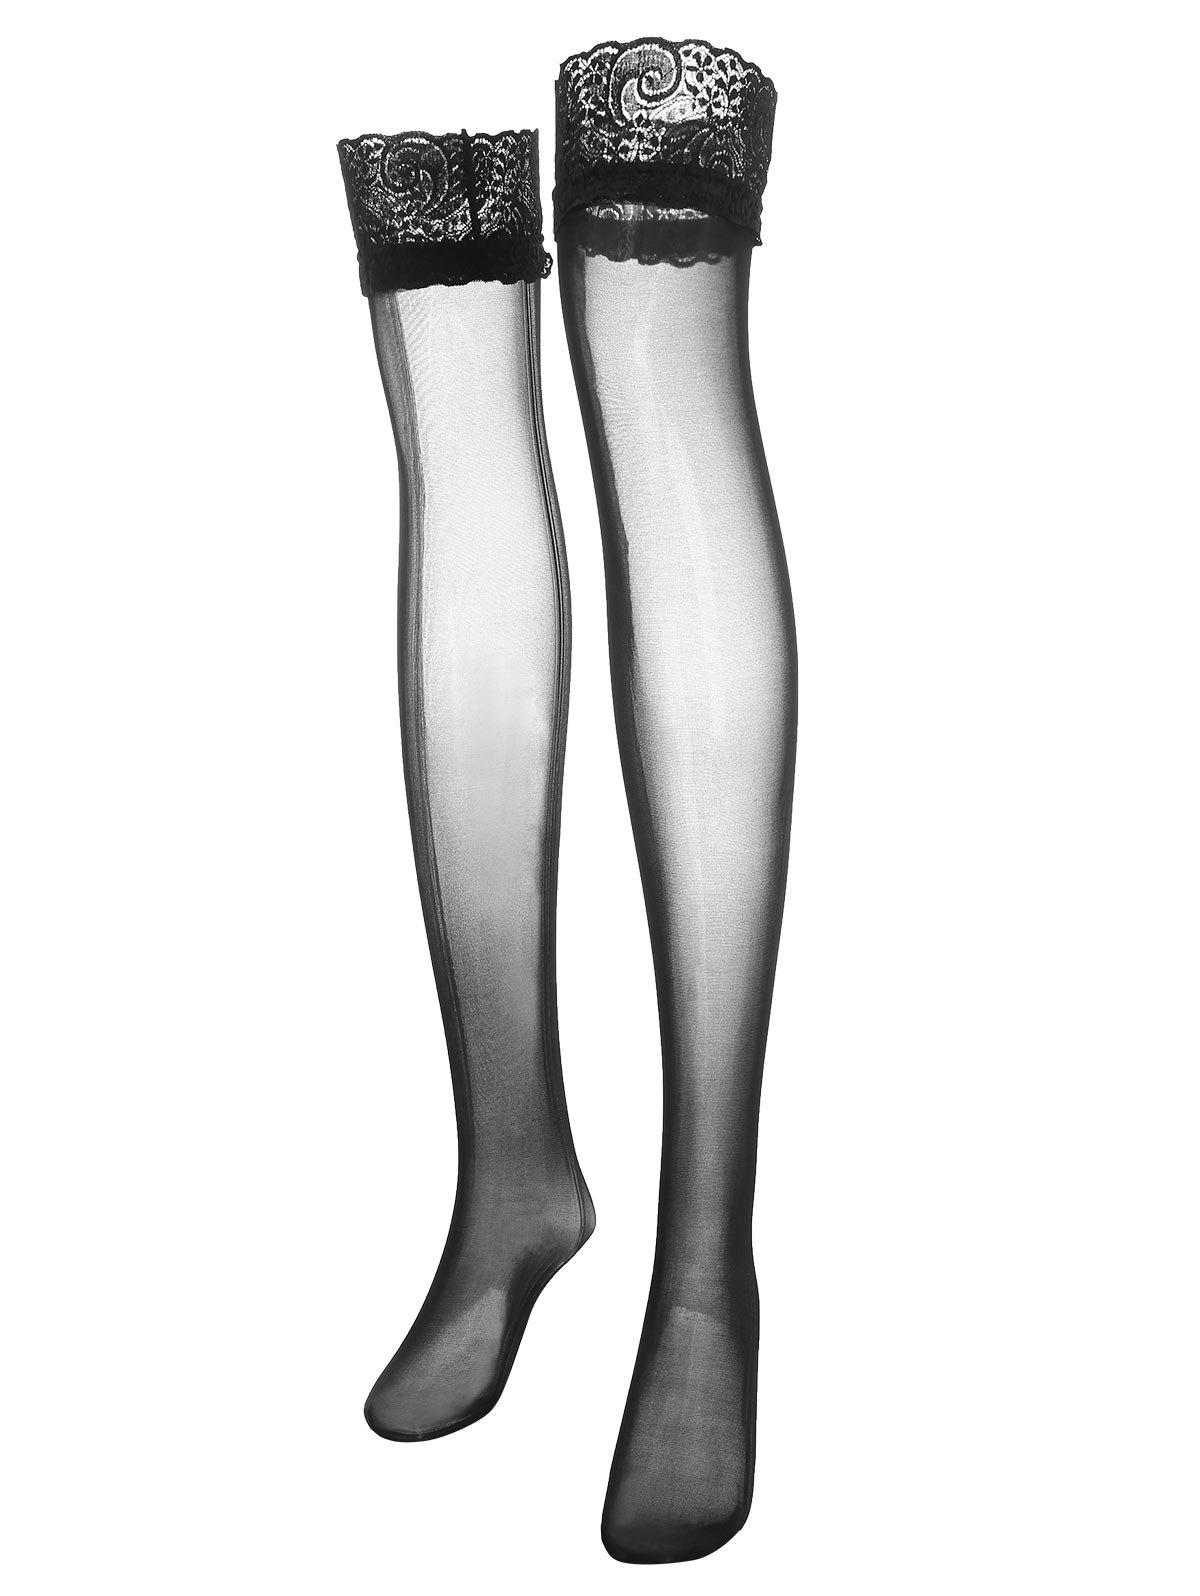 Plus Size Lace Insert Ruffle Thigh High Stockings - BLACK ONE SIZE